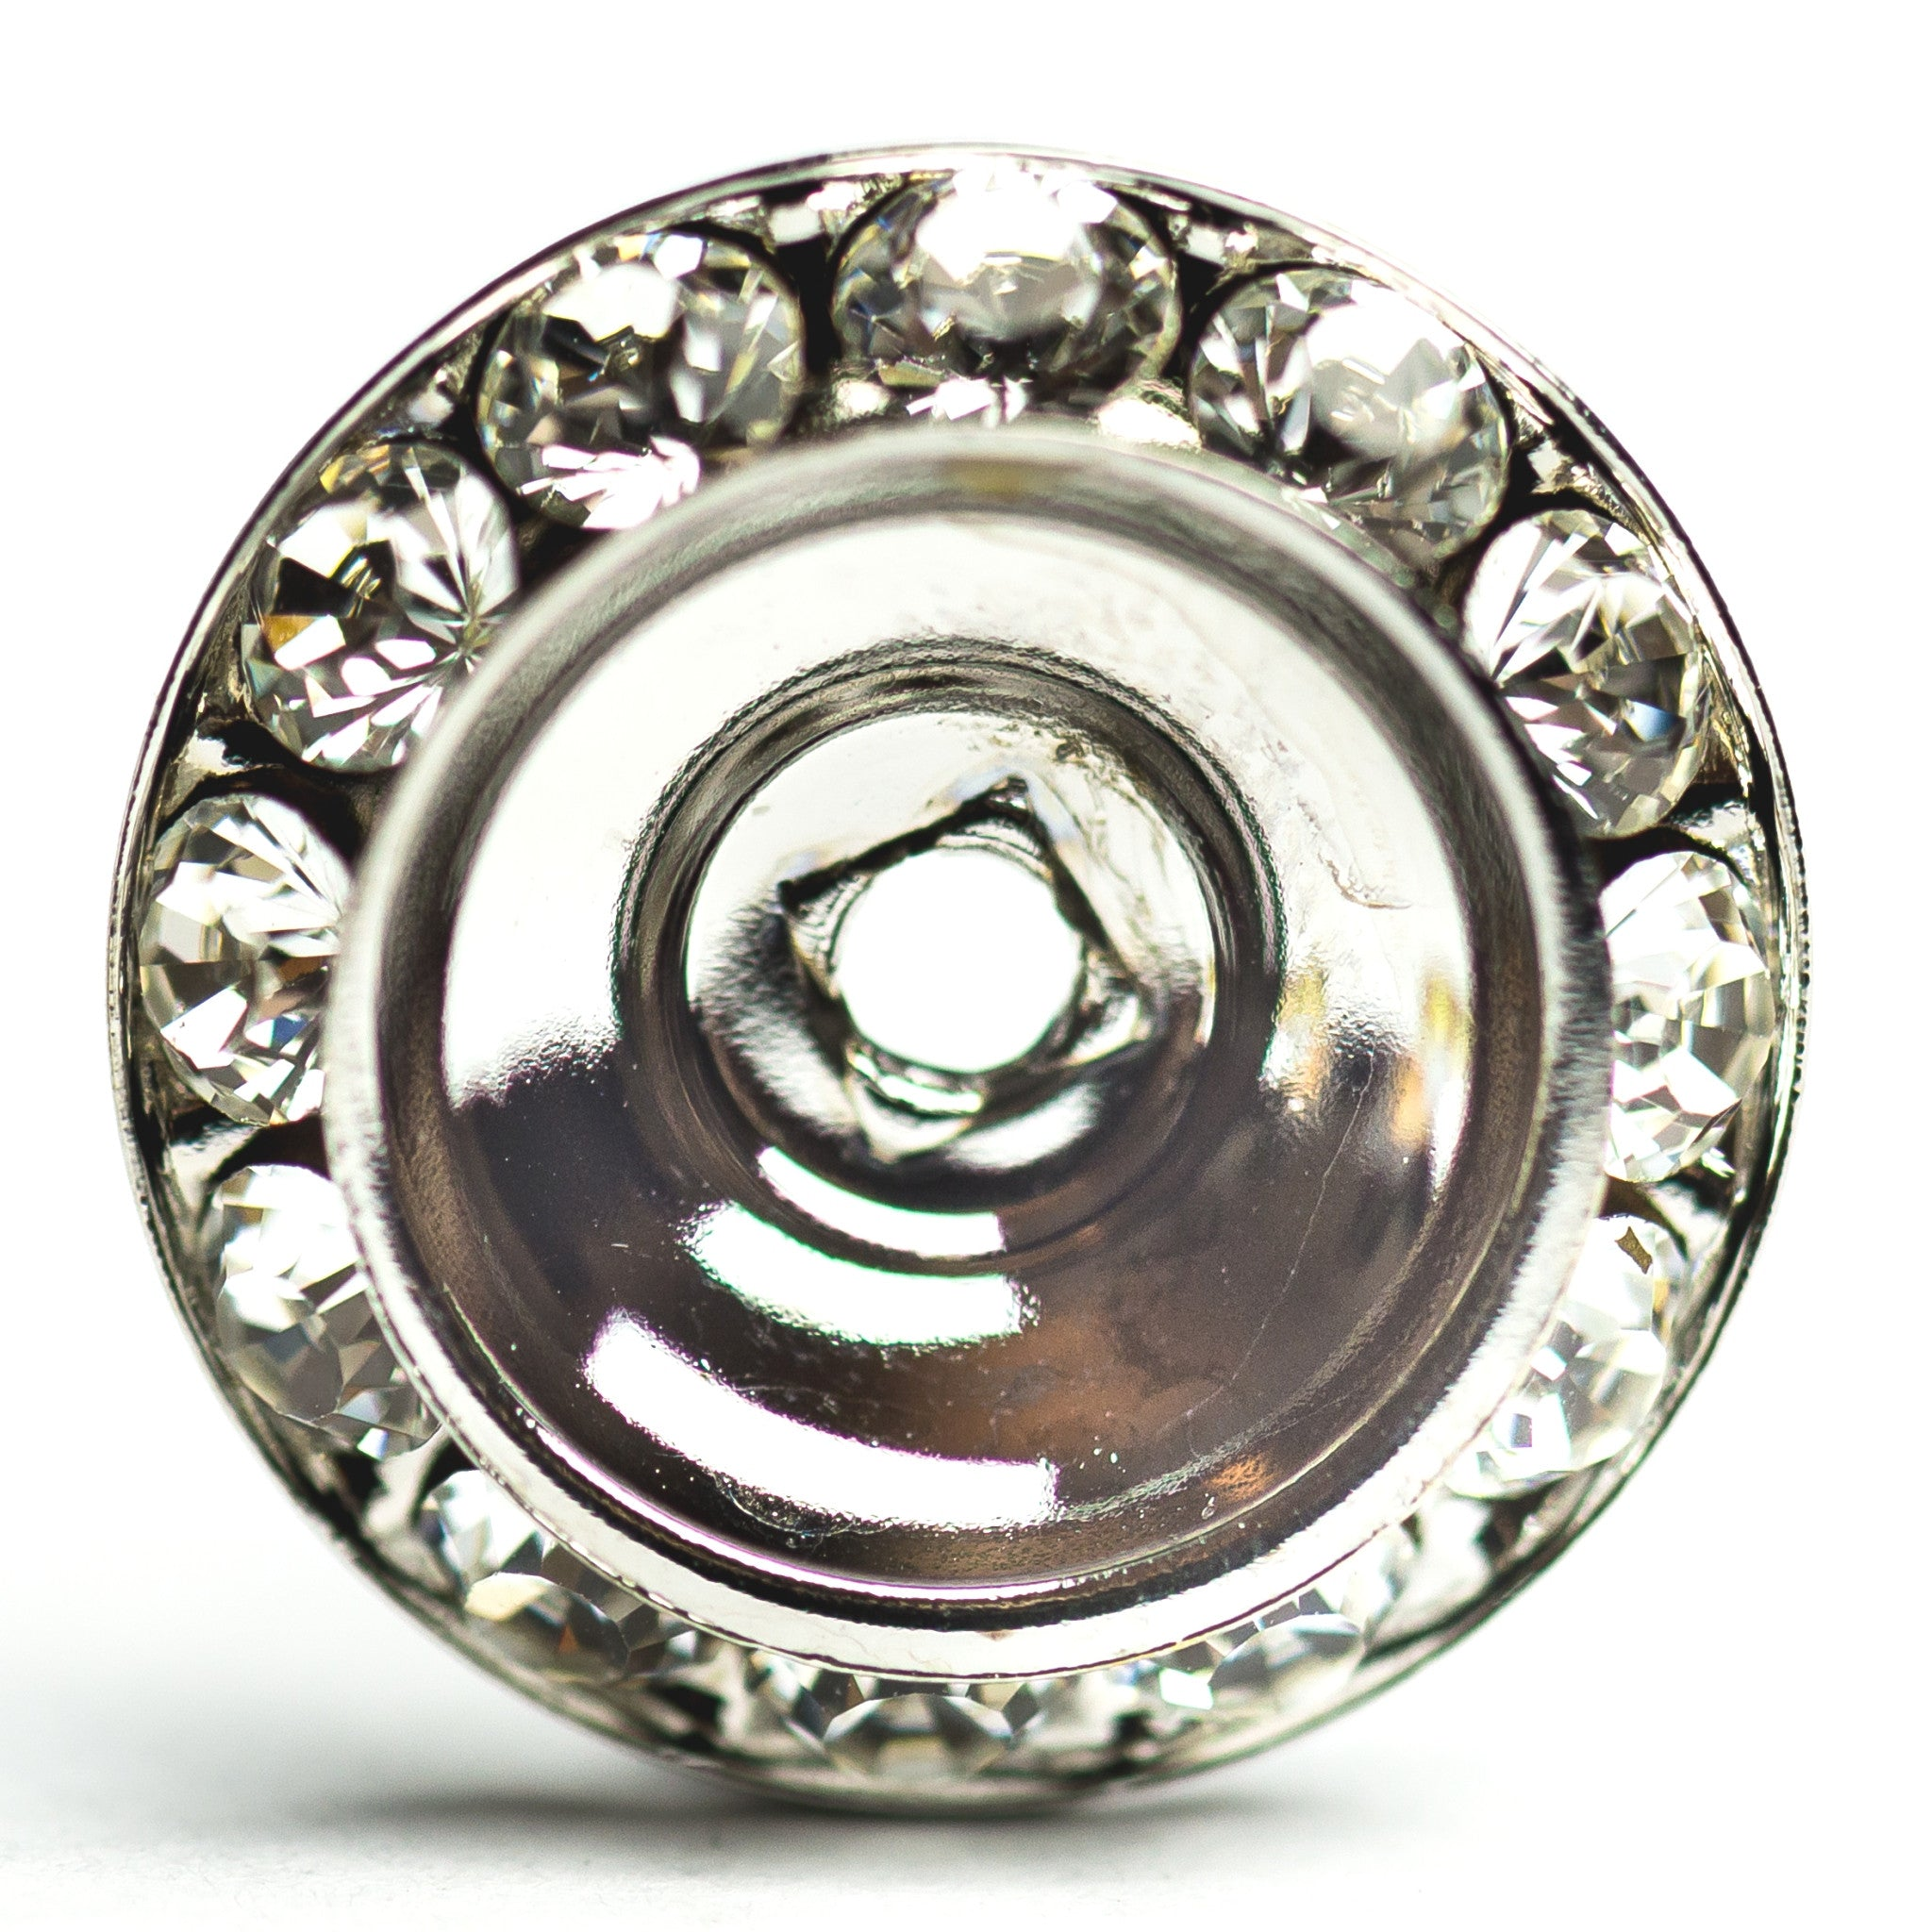 18MM Slant Rondel Crystal/Rhodium (6 pieces)